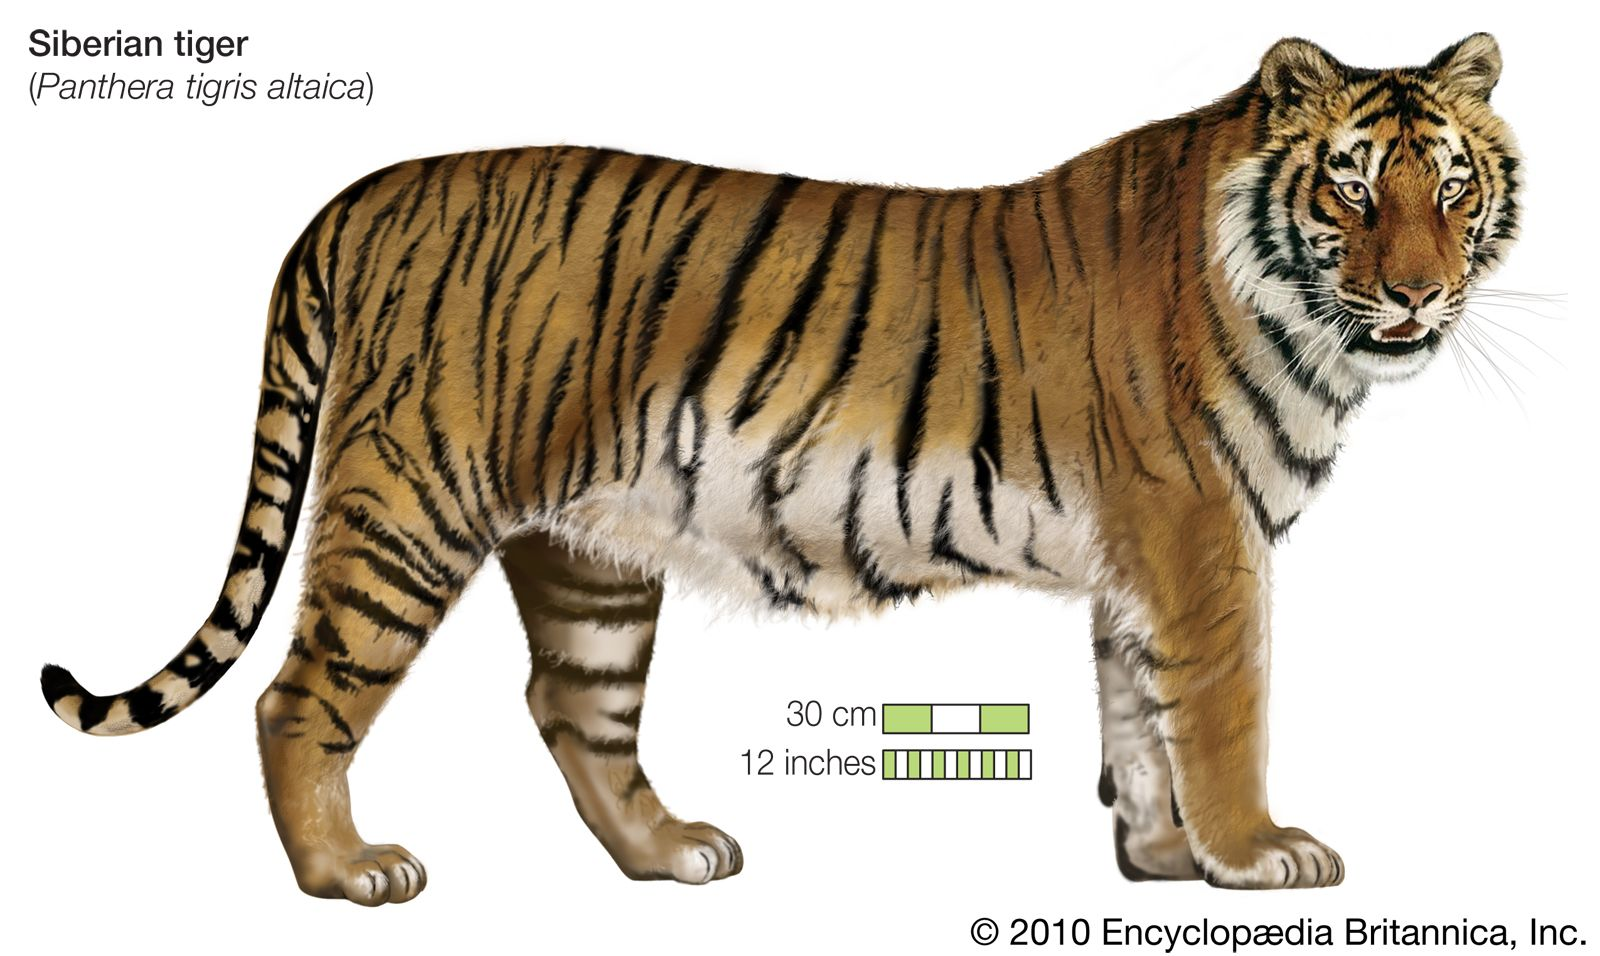 tiger | Facts, Information, & Habitat | Tiger facts, Siberian tiger, Wild  tiger